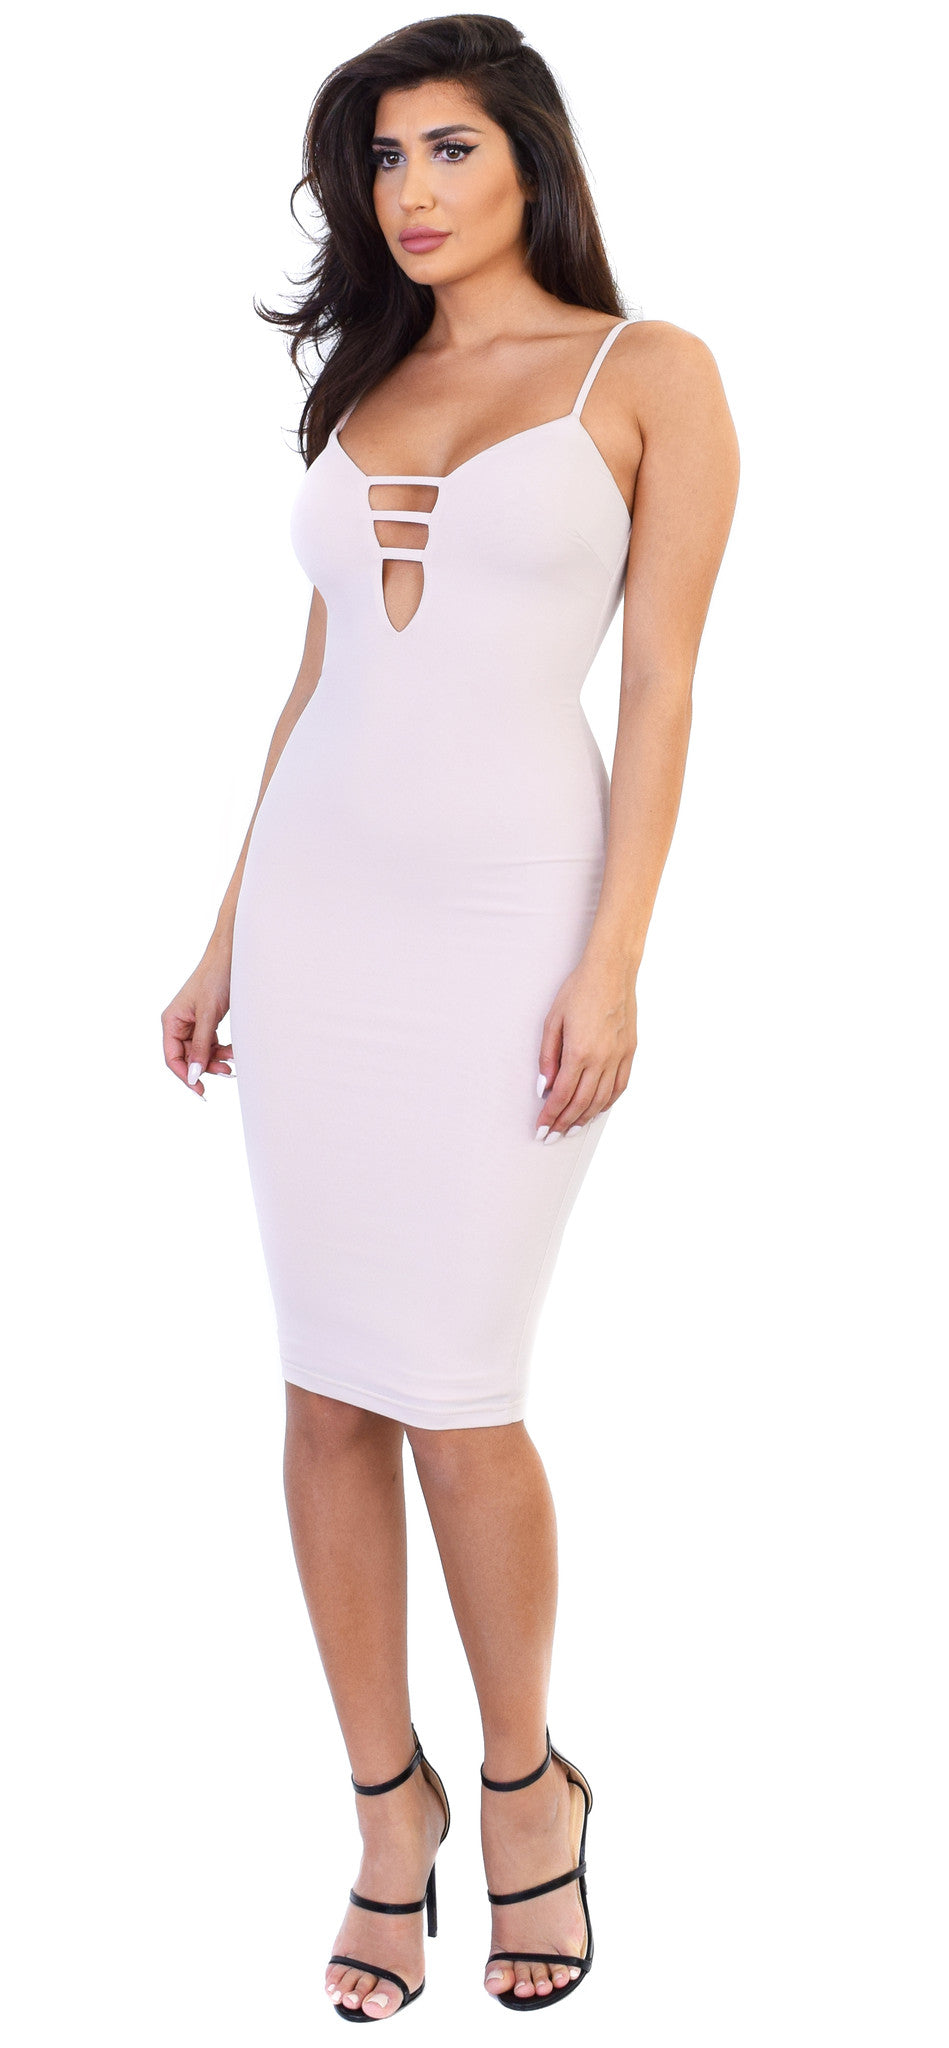 Desyre Nude Midi Dress - Emprada